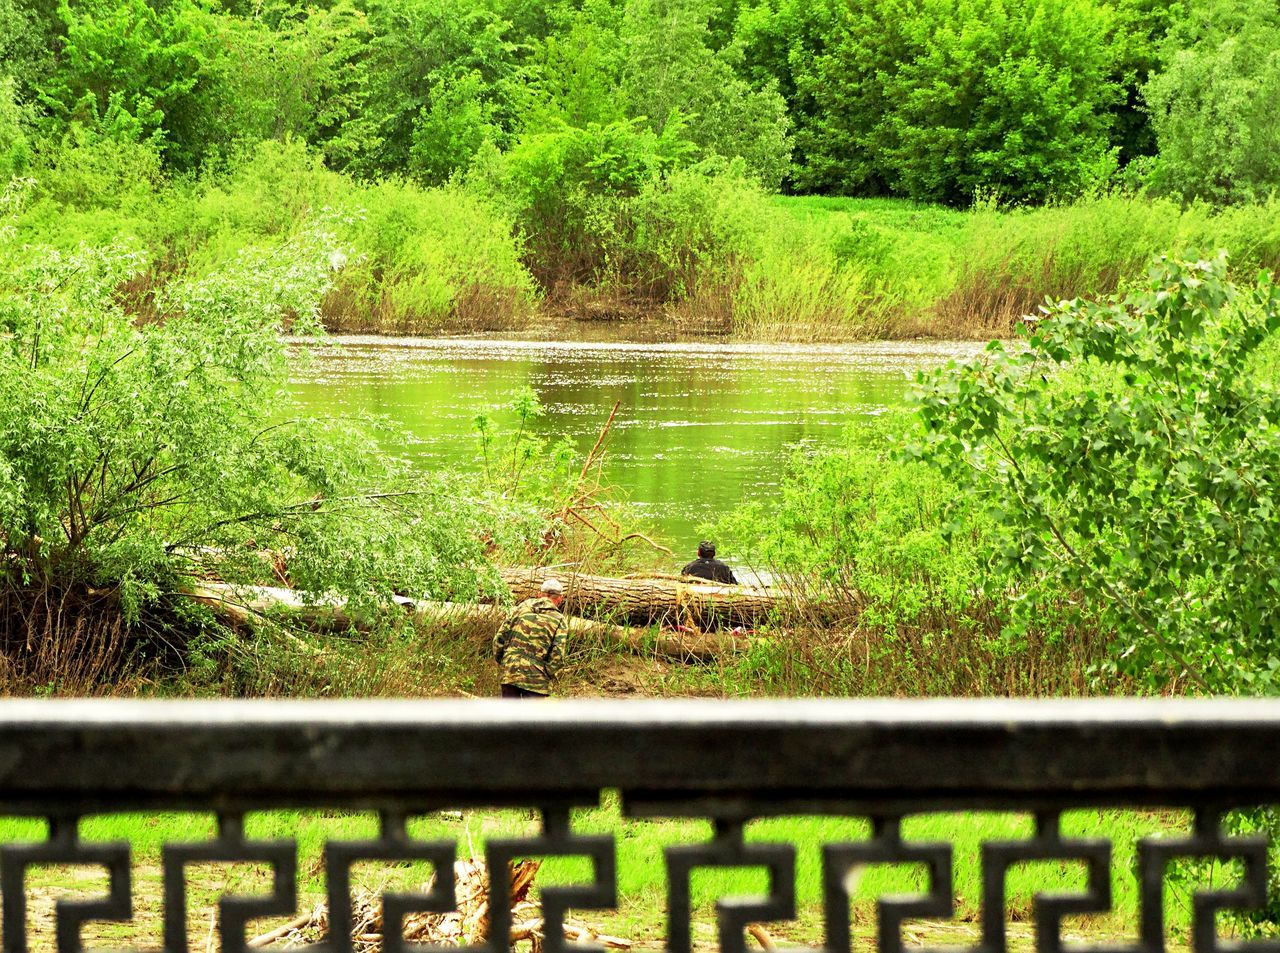 River River Ural Colors Spring Nature River View Ural People Tree Springtime Reflection Fence Trees I LOVE PHOTOGRAPHY My Favorite Photo Eye Em Nature Lover Eyeem Gallery Taking Photos. Nature Photography Grass From My Point Of View Capture The Moment Branches EyeEm Nature Lover Eye4photography  The Great Outdoors - 2016 EyeEm Awards